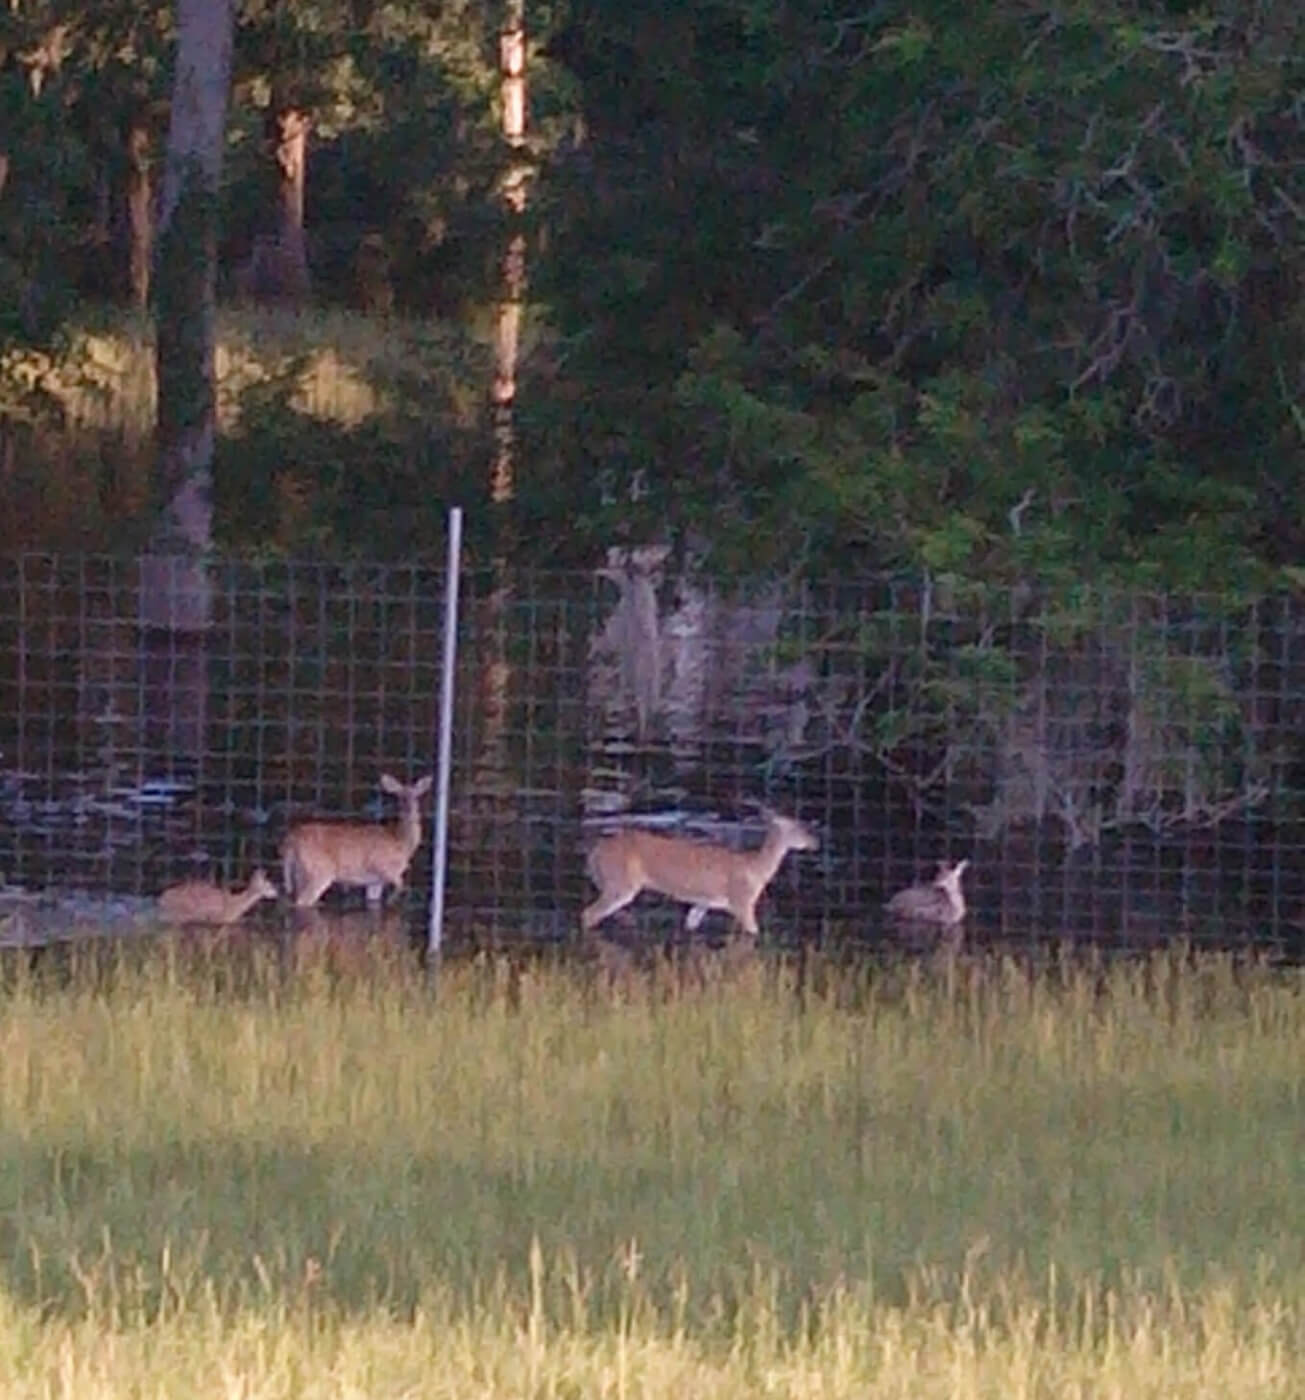 UPDATE: Deer at Flooded Game Ranch Now on Dry Land!